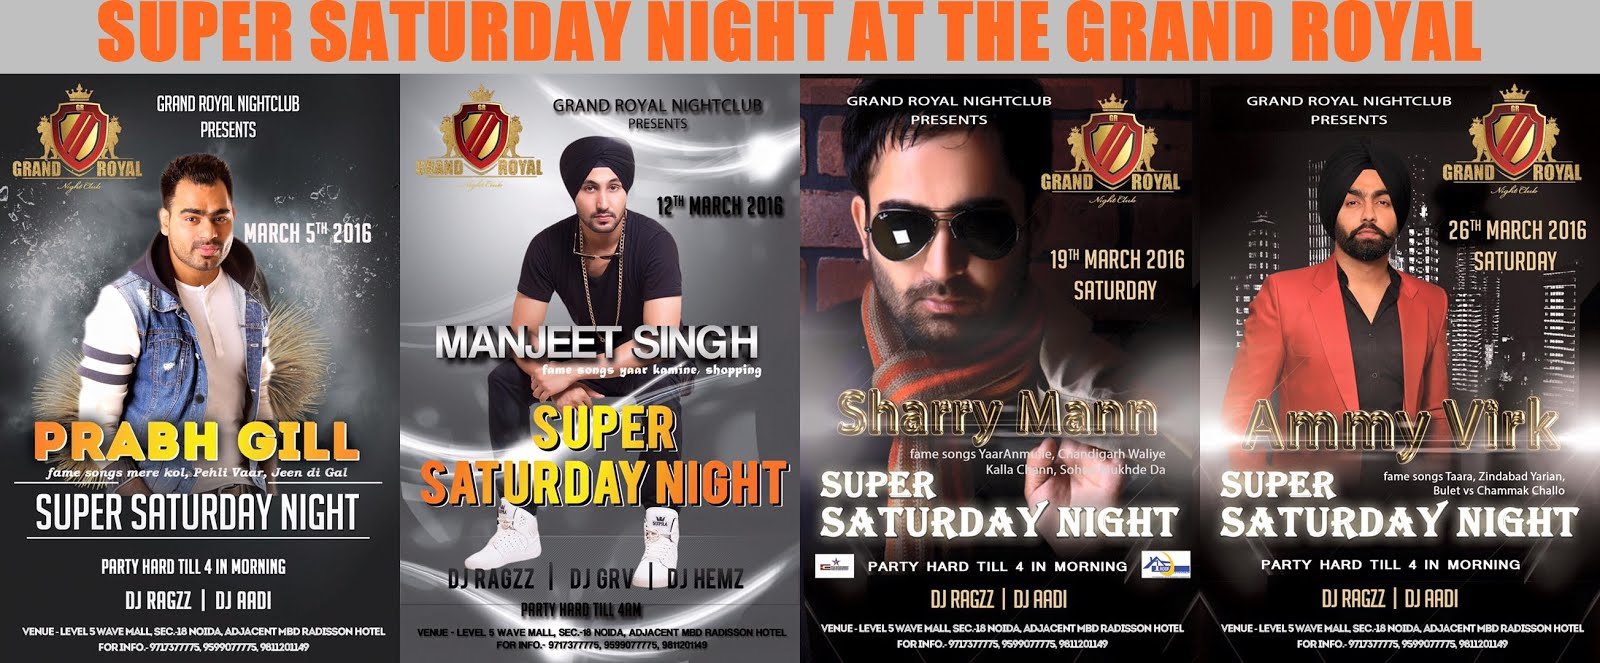 Saturday Night Fever in Noida All This March